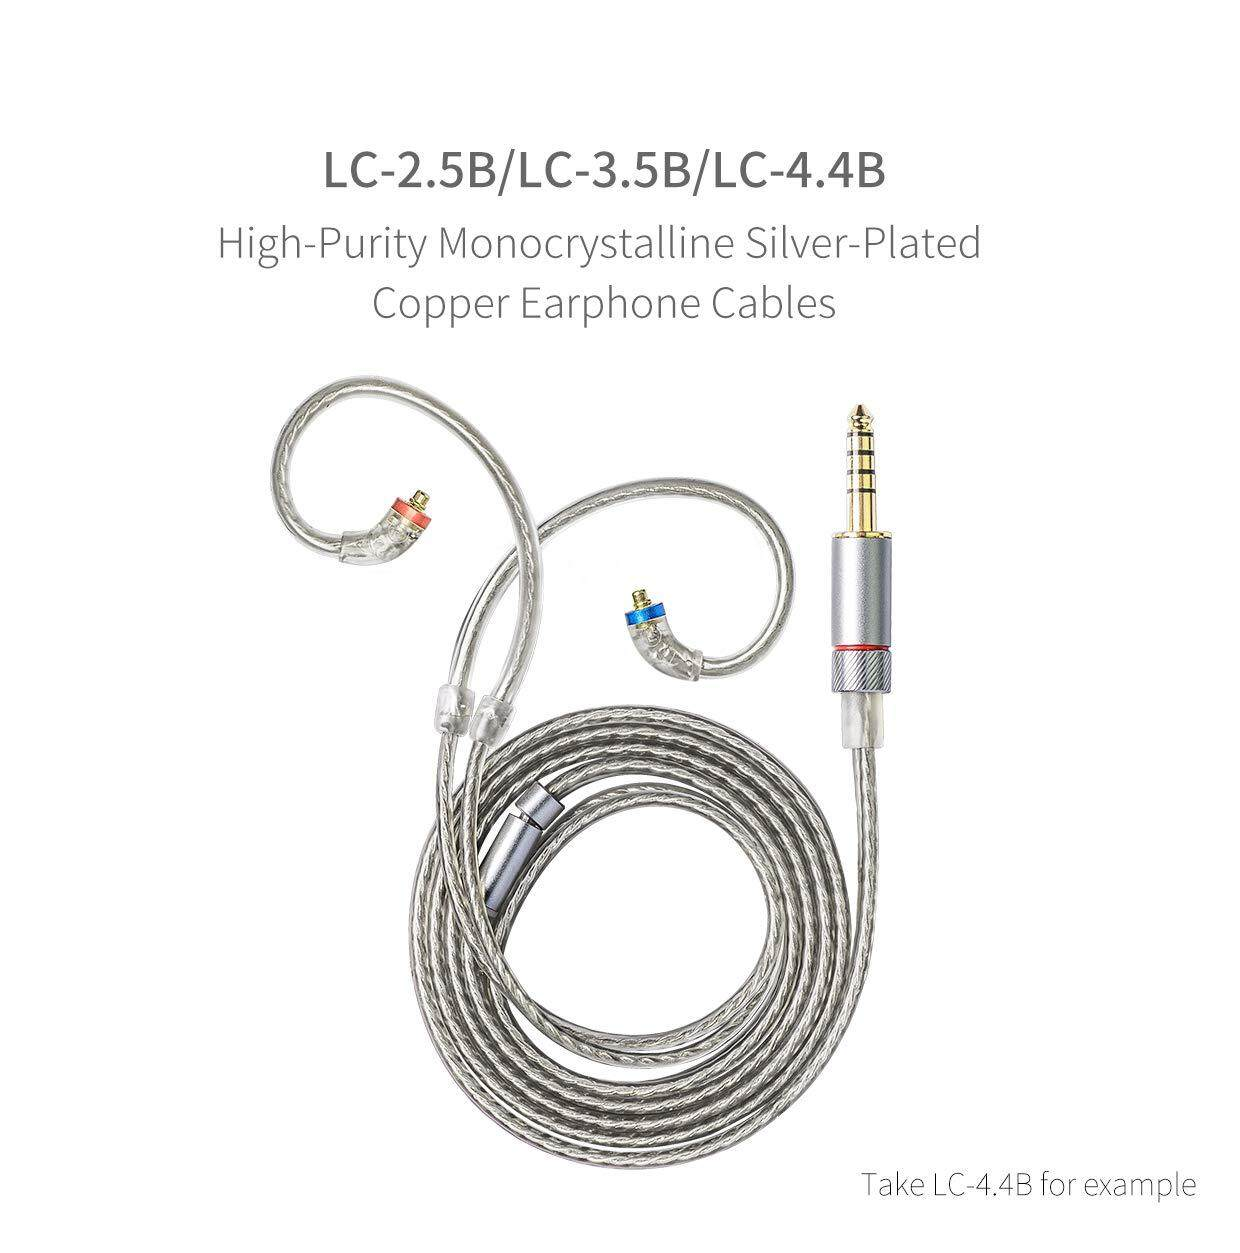 Fiio LC-2 5B MMCX Earphone Replacement Cable 2 5mm jack (LC-2 5B)